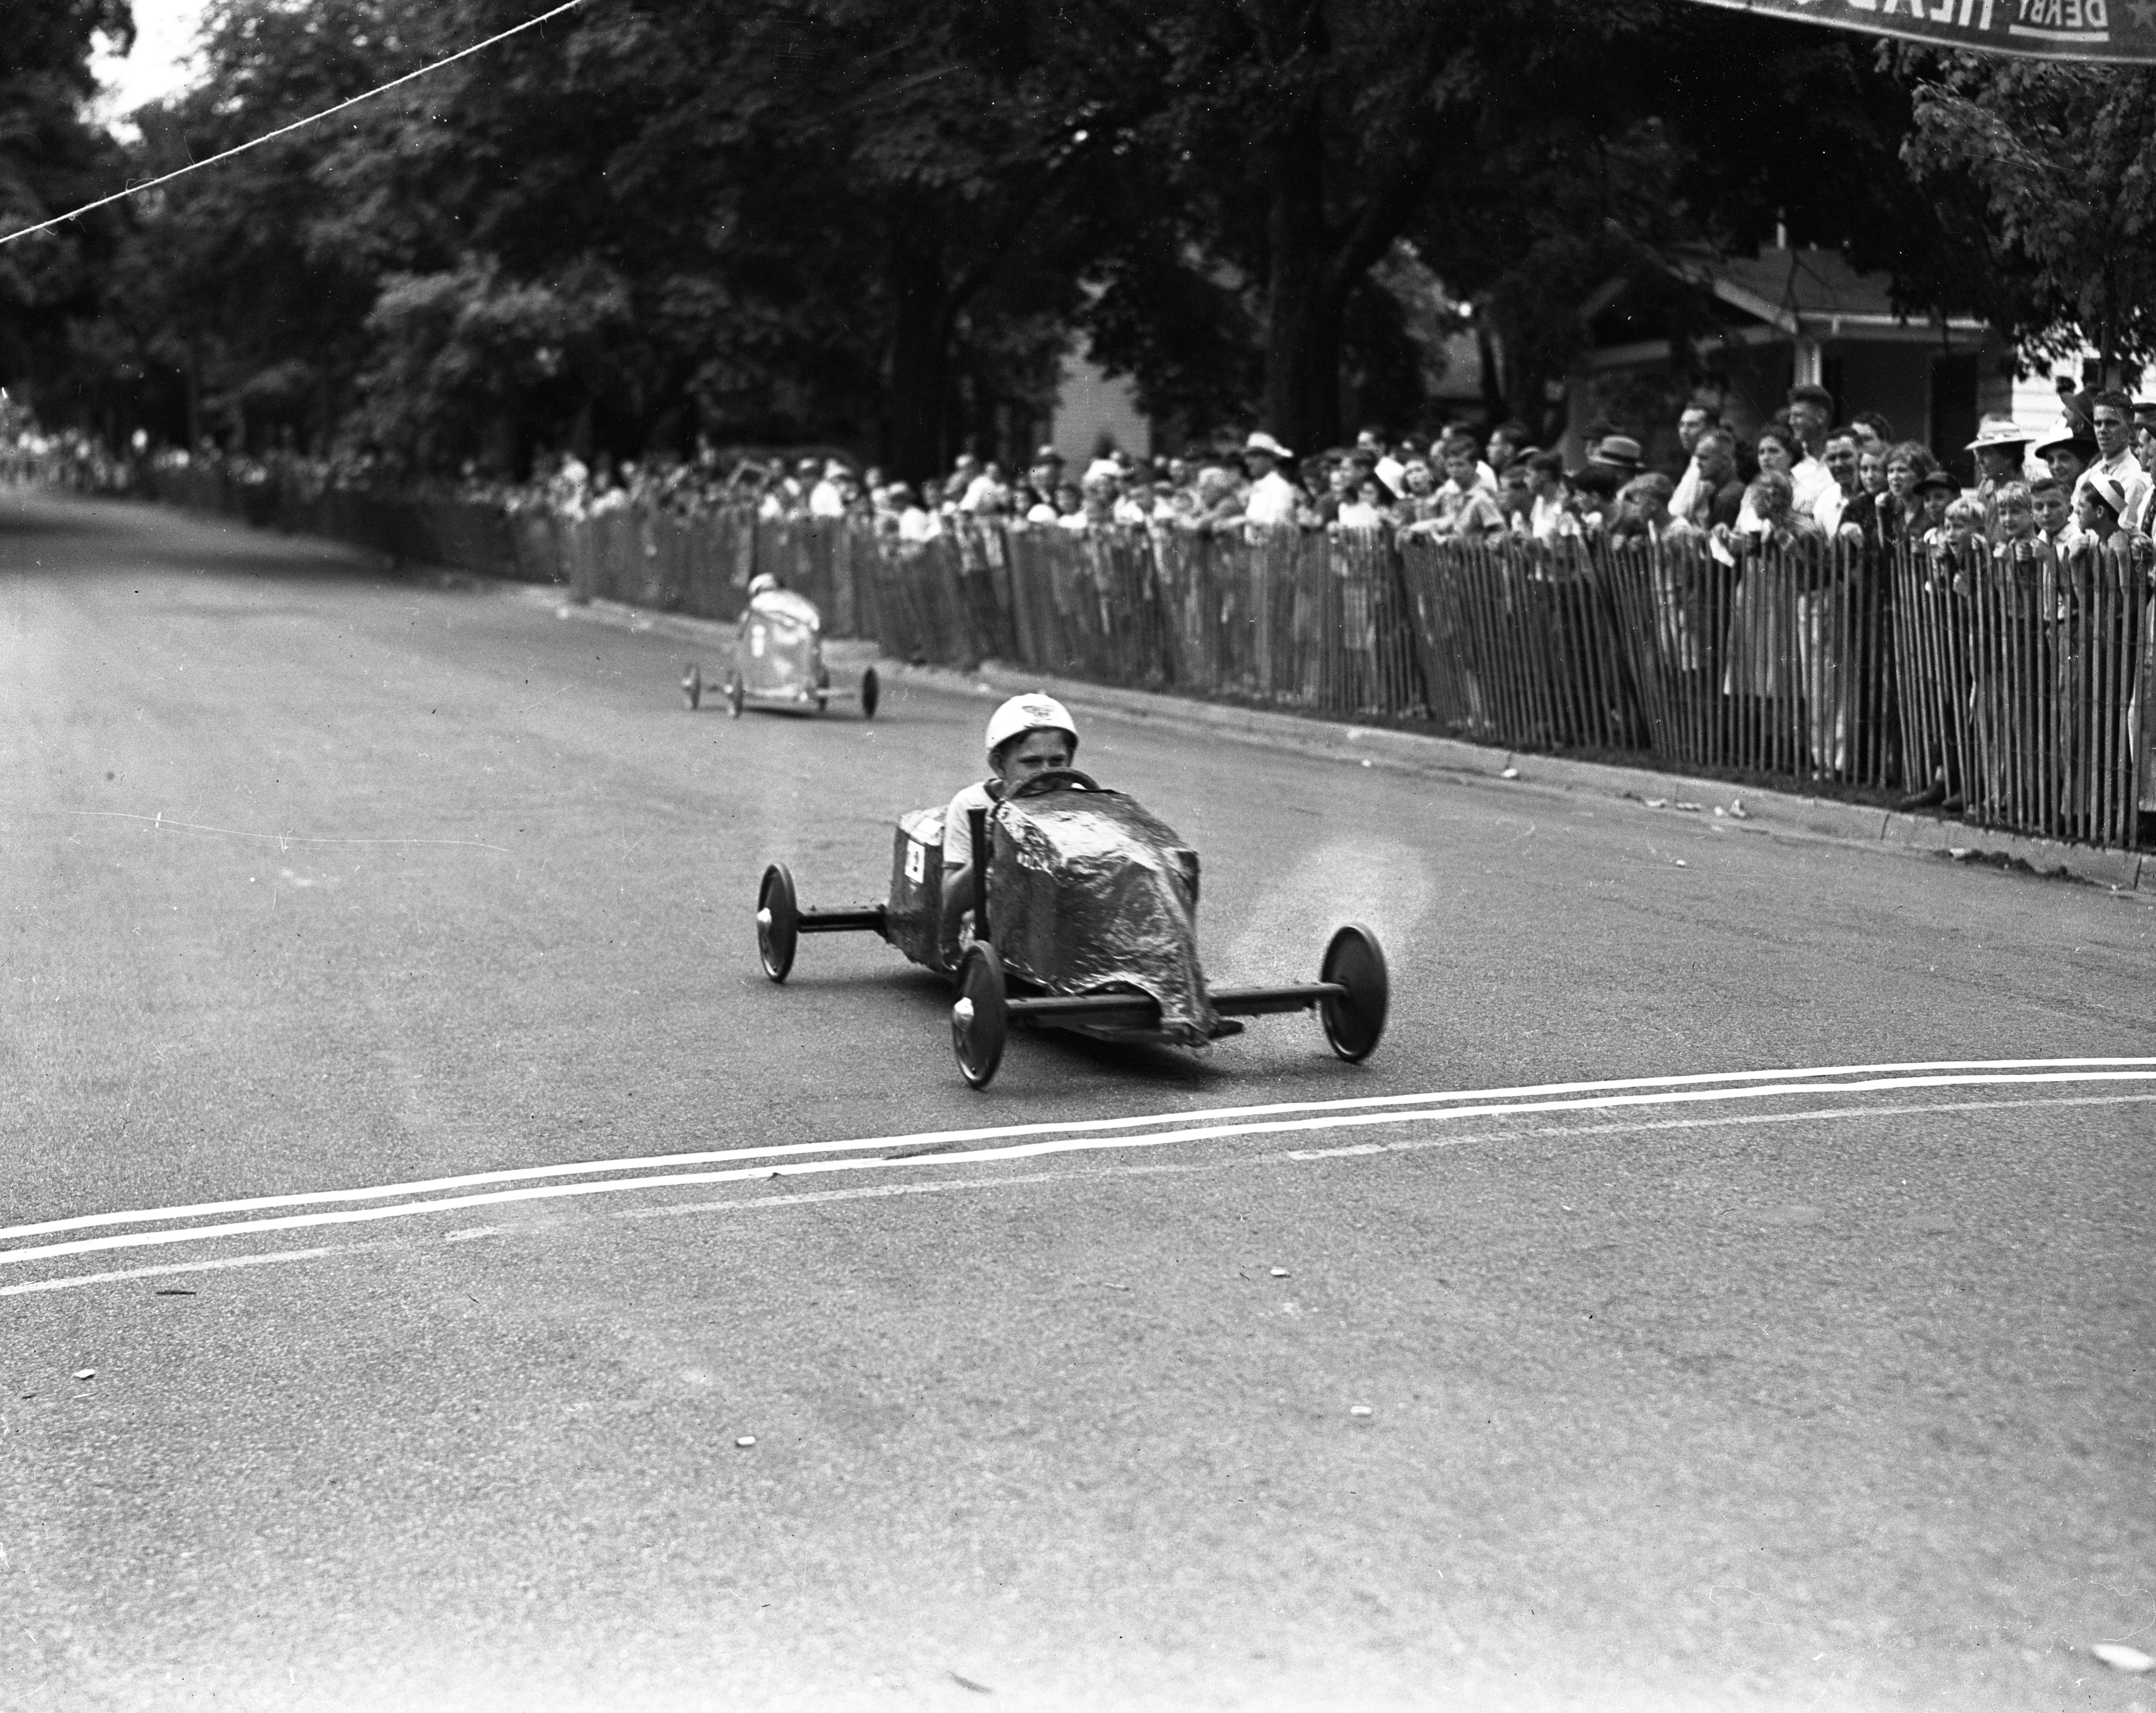 George Crandall at the Soap Box Derby Finish Line, July 1939 image